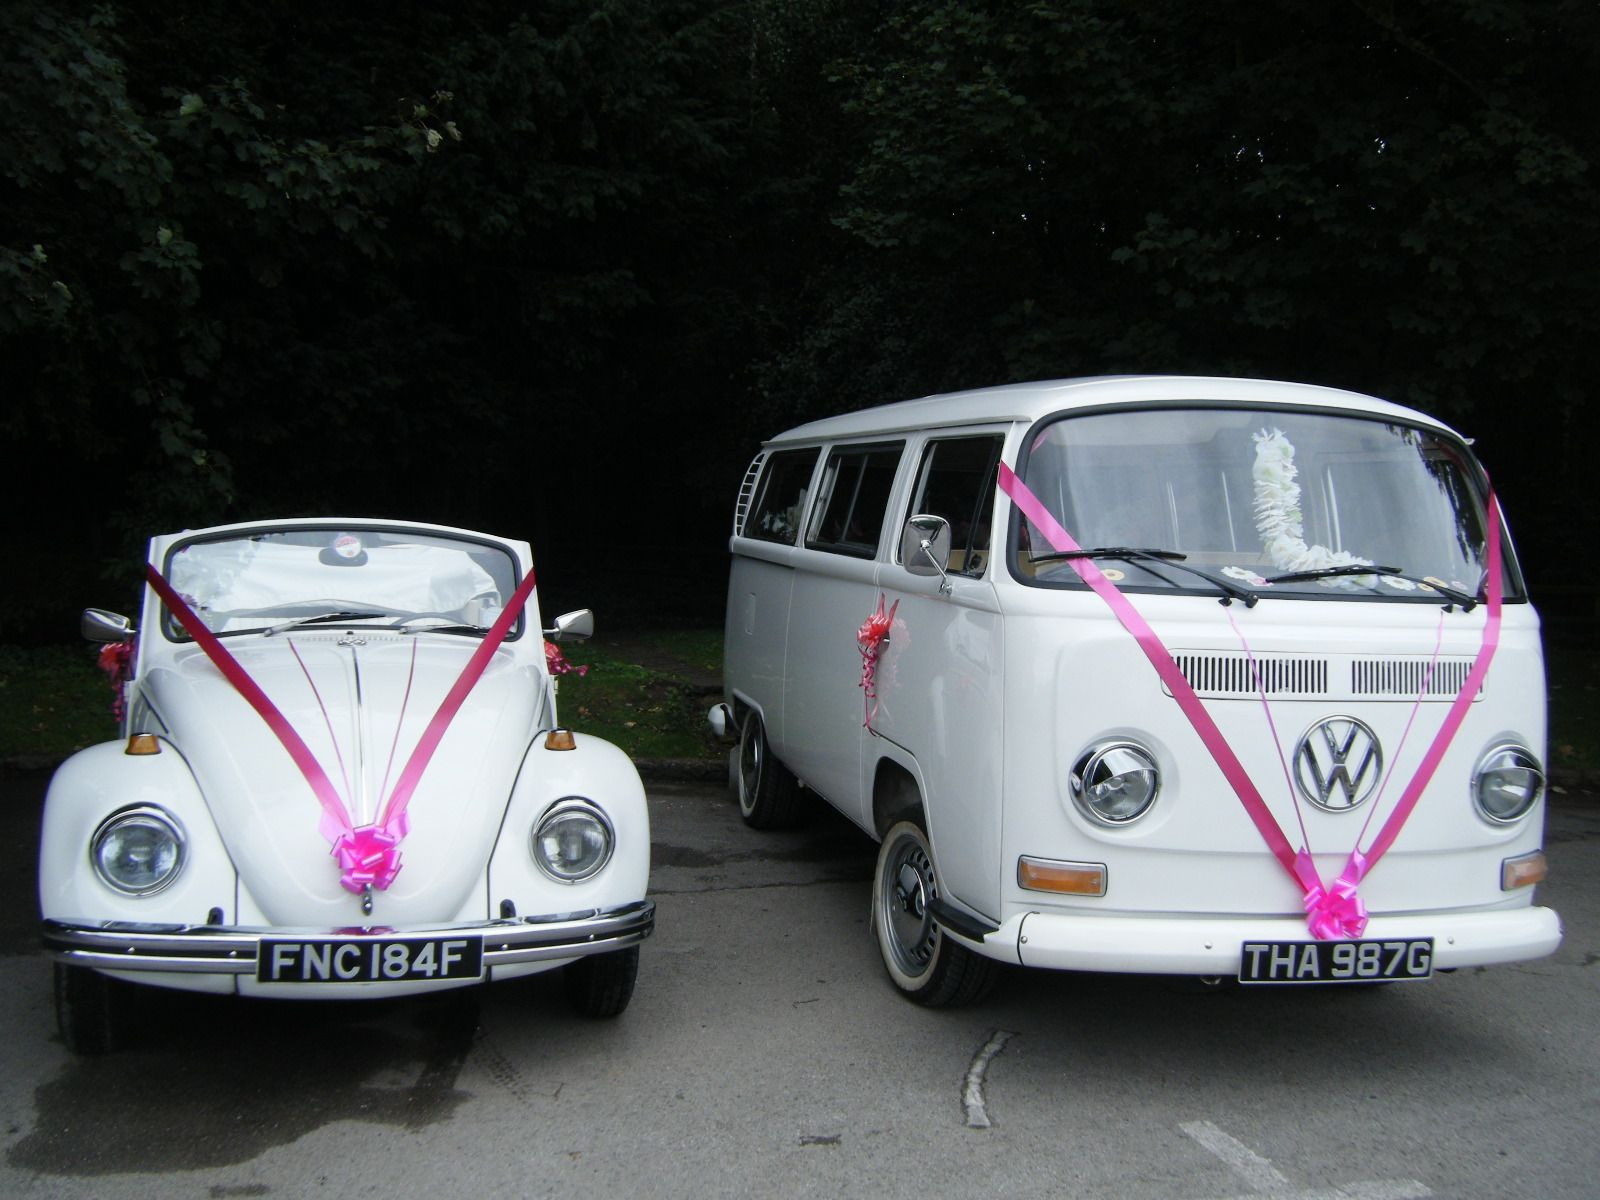 Vw Beetle/Vw Camper Bus | North East Wedding Car Hire for Durham ...